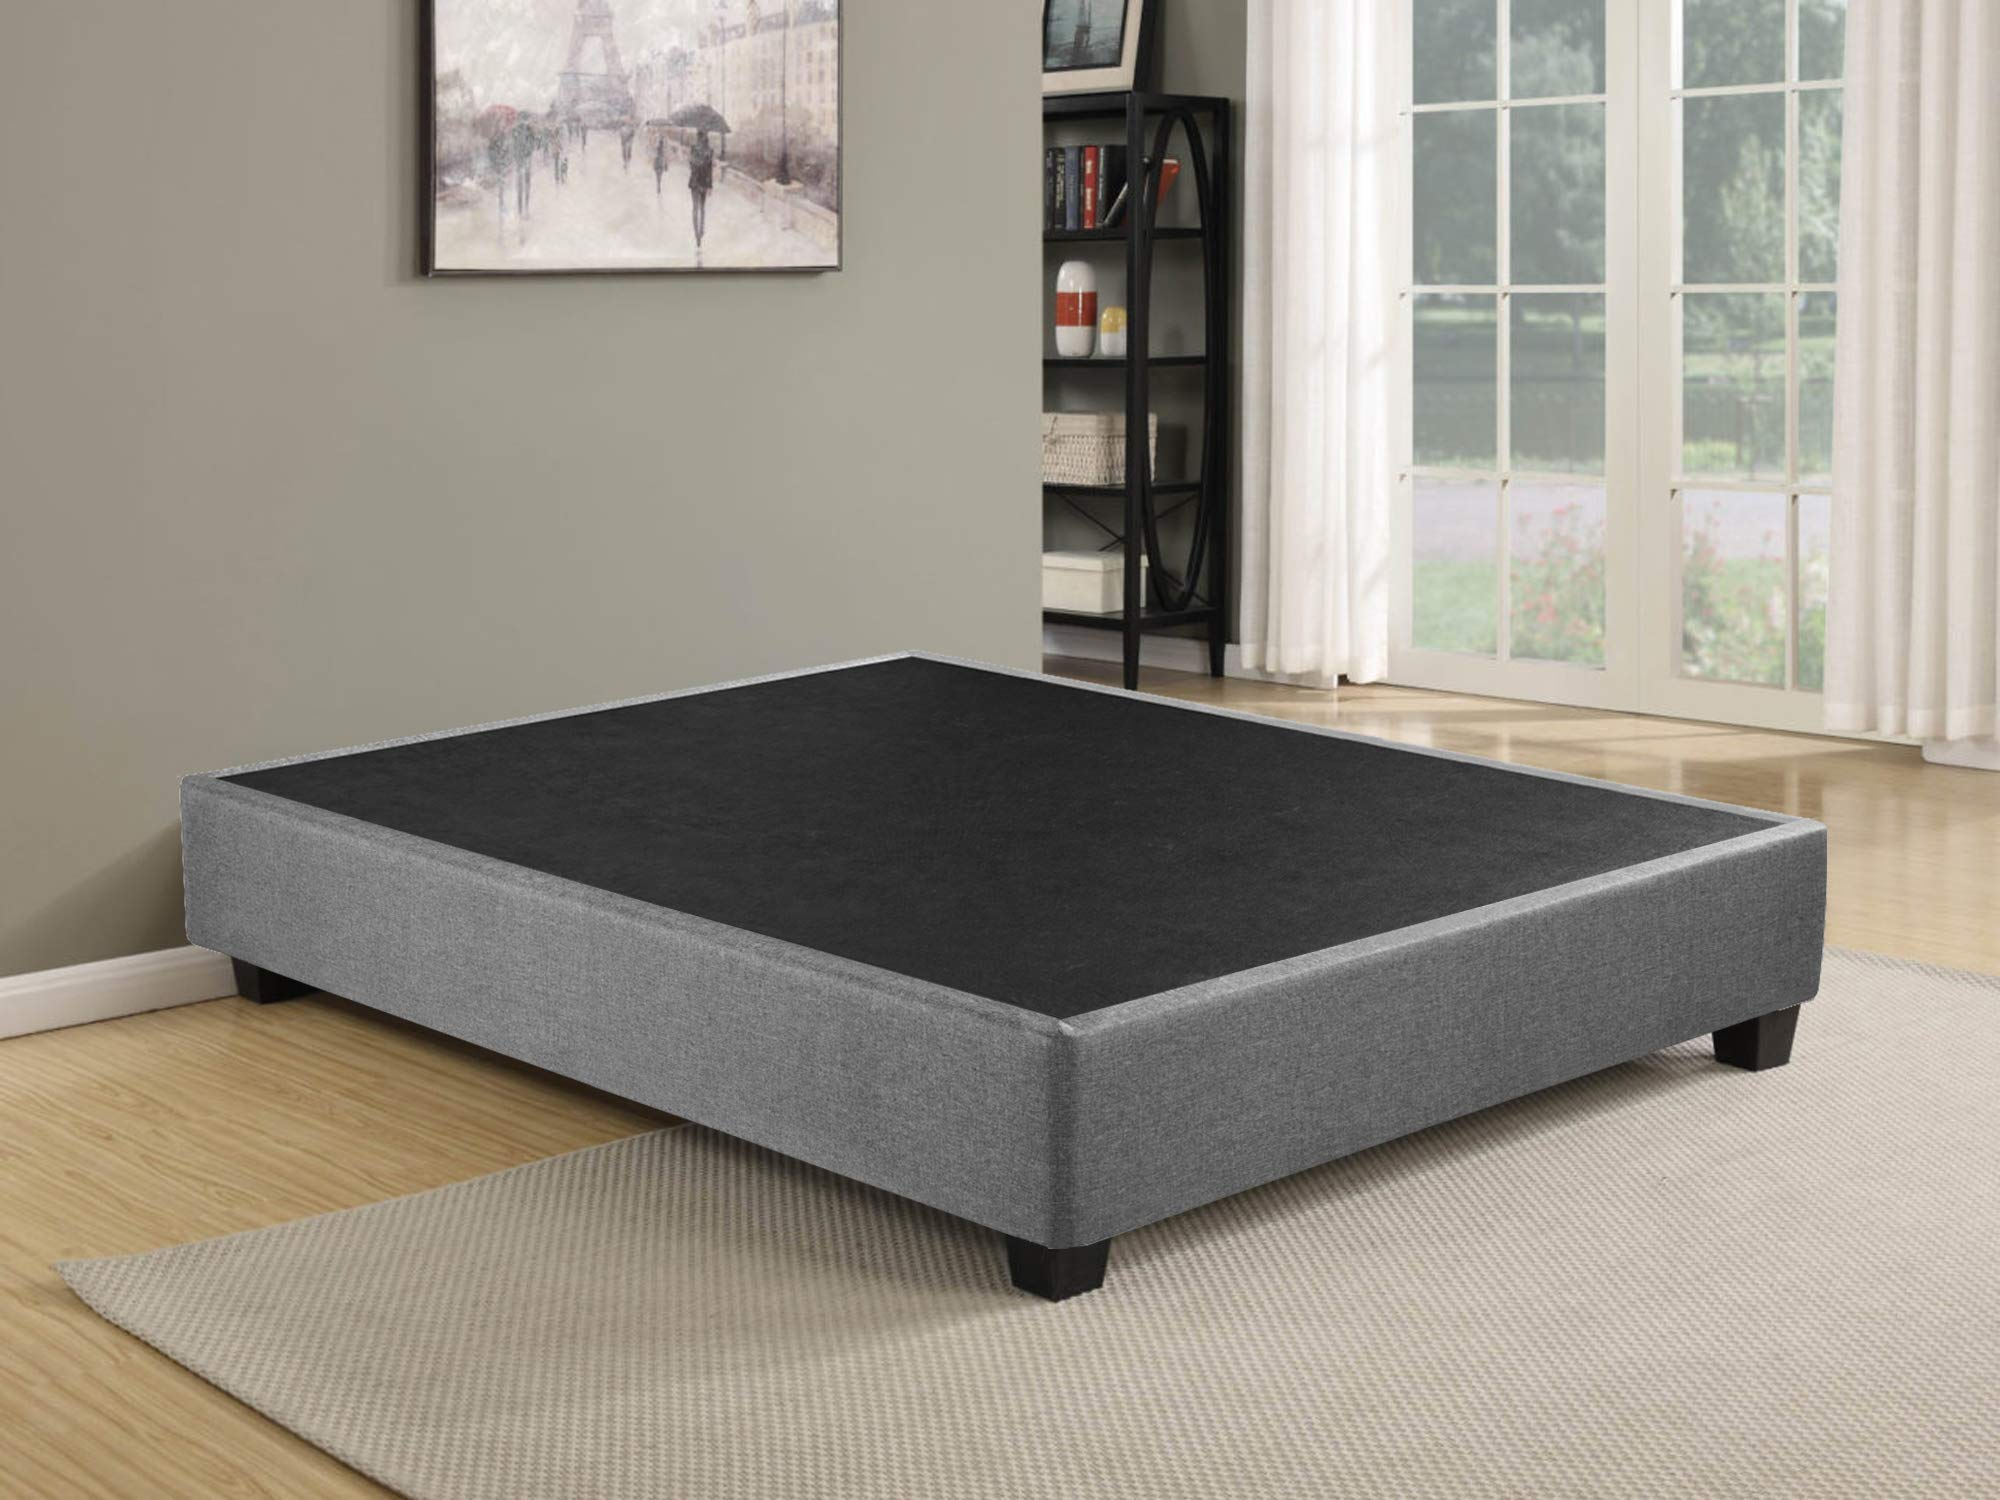 Spring Solution, Platform Bed For Full Mattress, Eliminates Need For Box Spring and Bed Frame, Full Size by Spring Solution